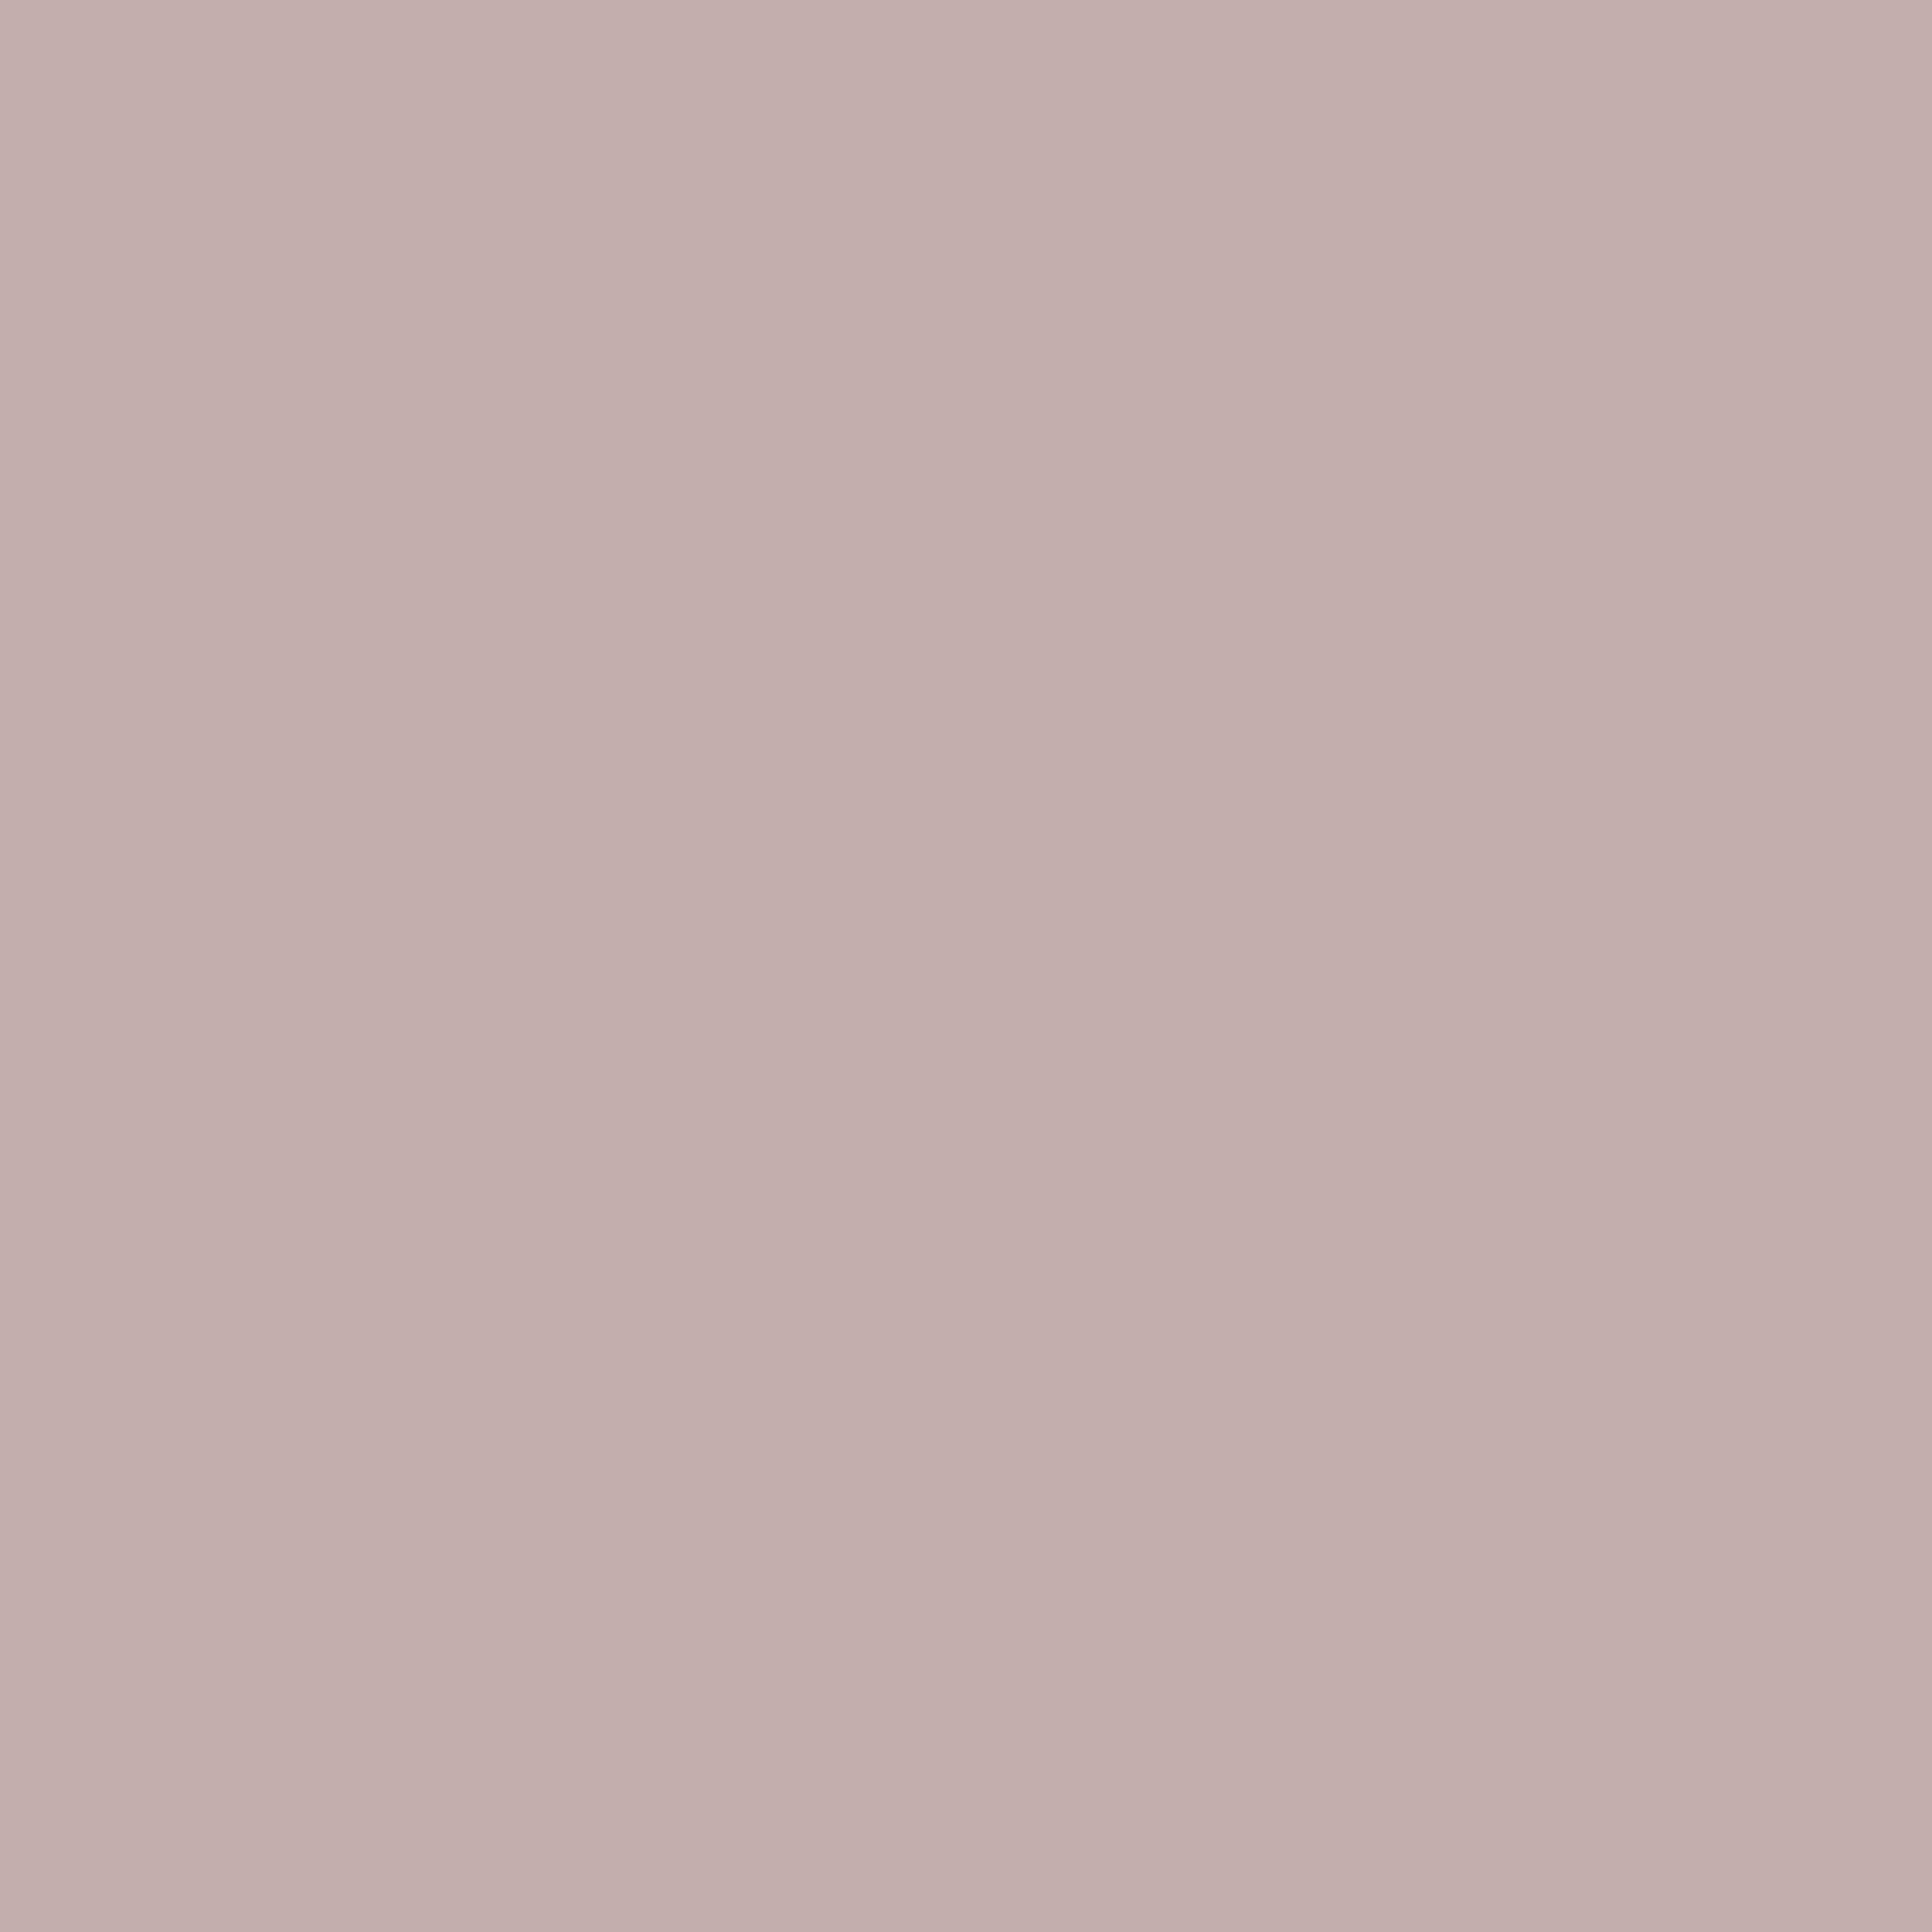 3600x3600 Silver Pink Solid Color Background